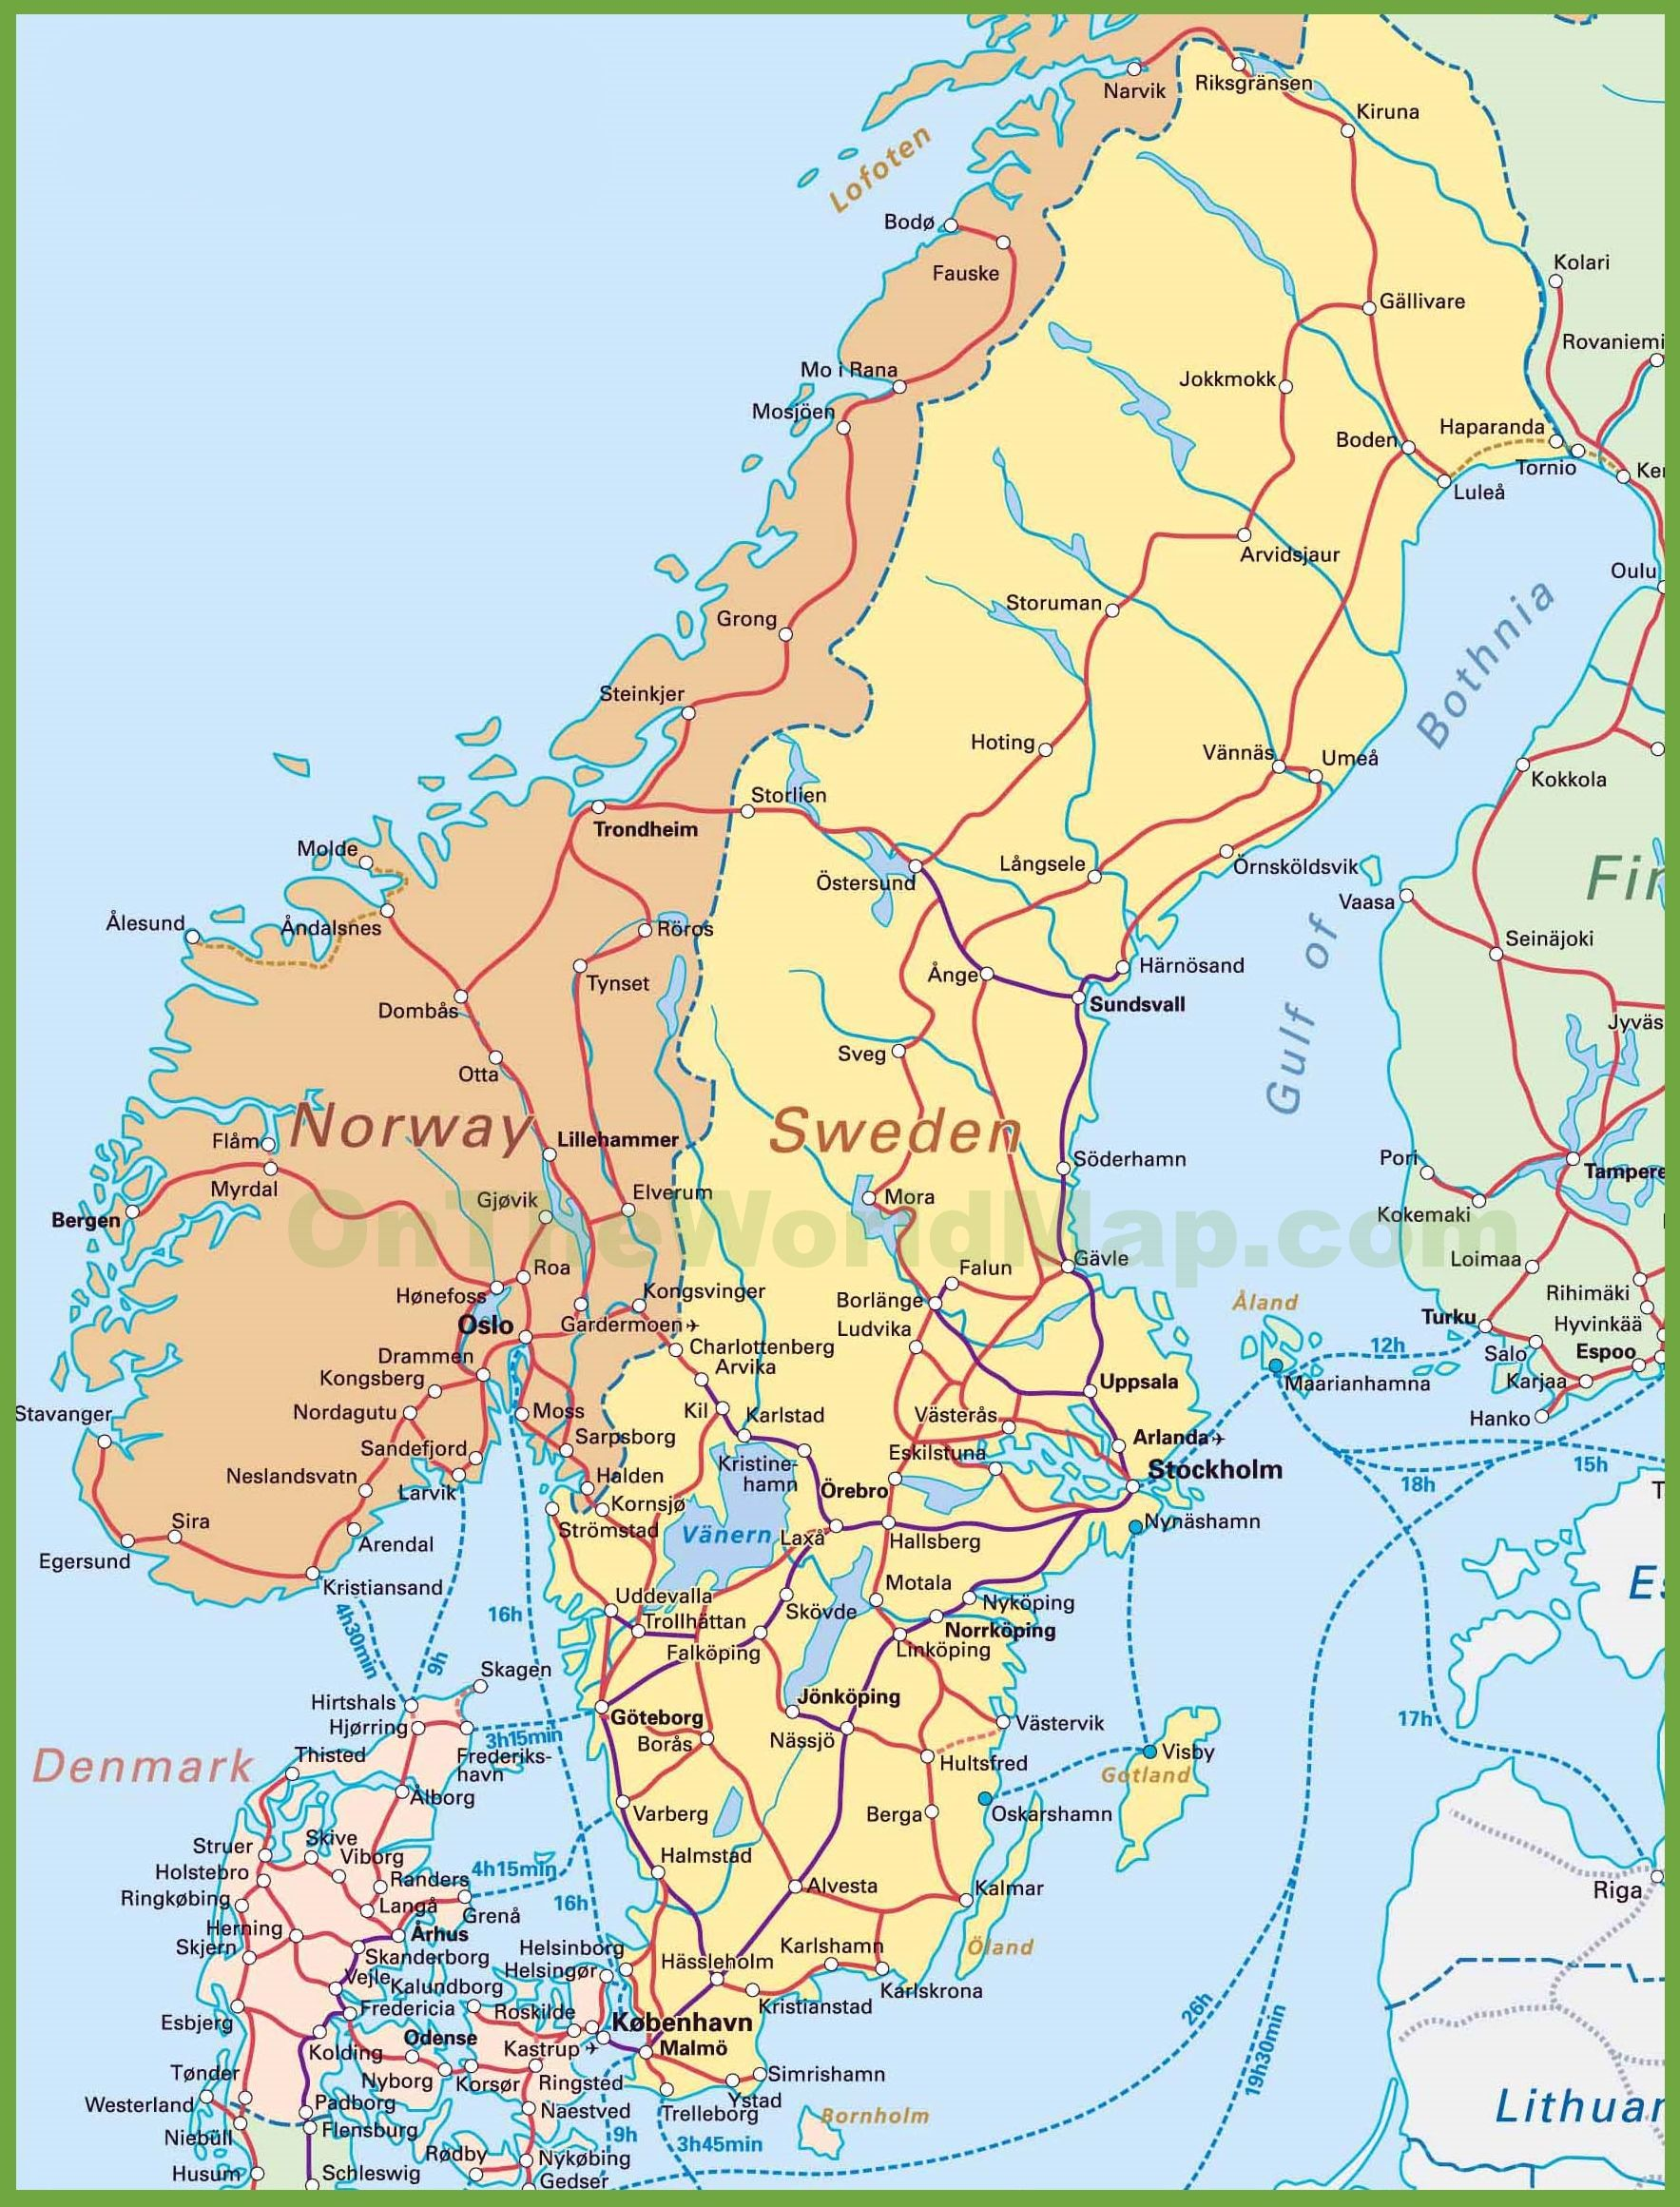 Map of Sweden, Norway and Denmark | Swedish people in 2019 | Sweden Swedish Train Map on